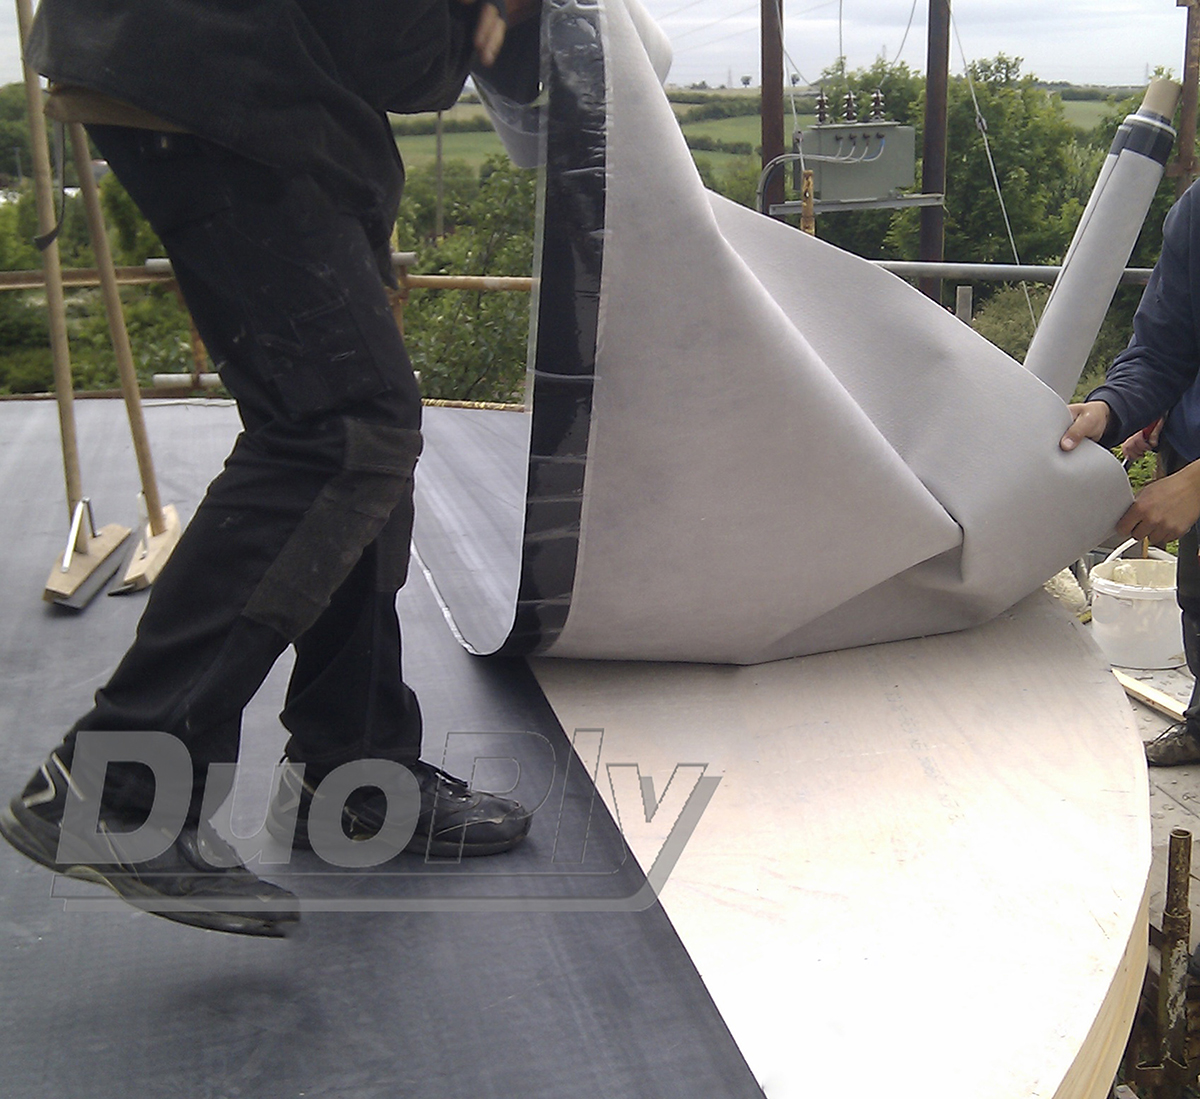 Laying the Duoply EPDM rubber roofing membrane